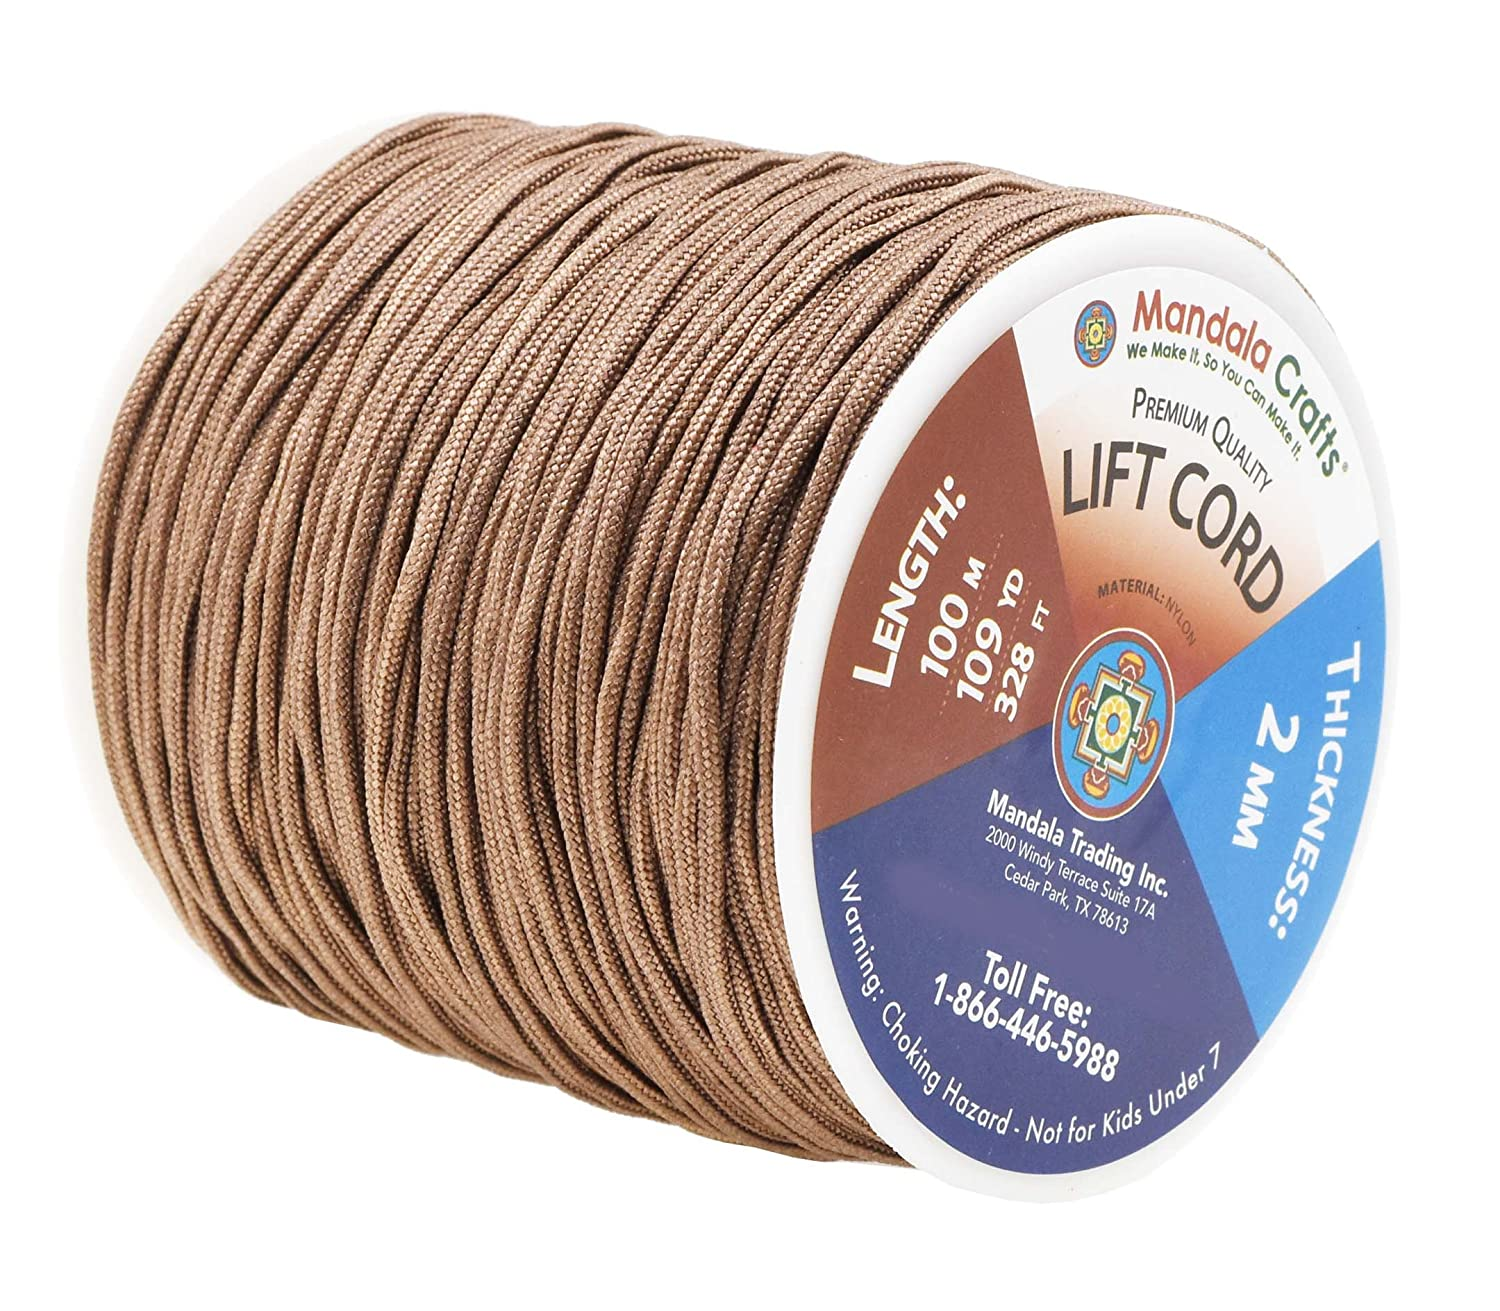 and Rollers Mandala Crafts Blinds String Shades 1mm, Chocolate Brown Lift Cord Replacement from Braided Nylon for RVs Windows